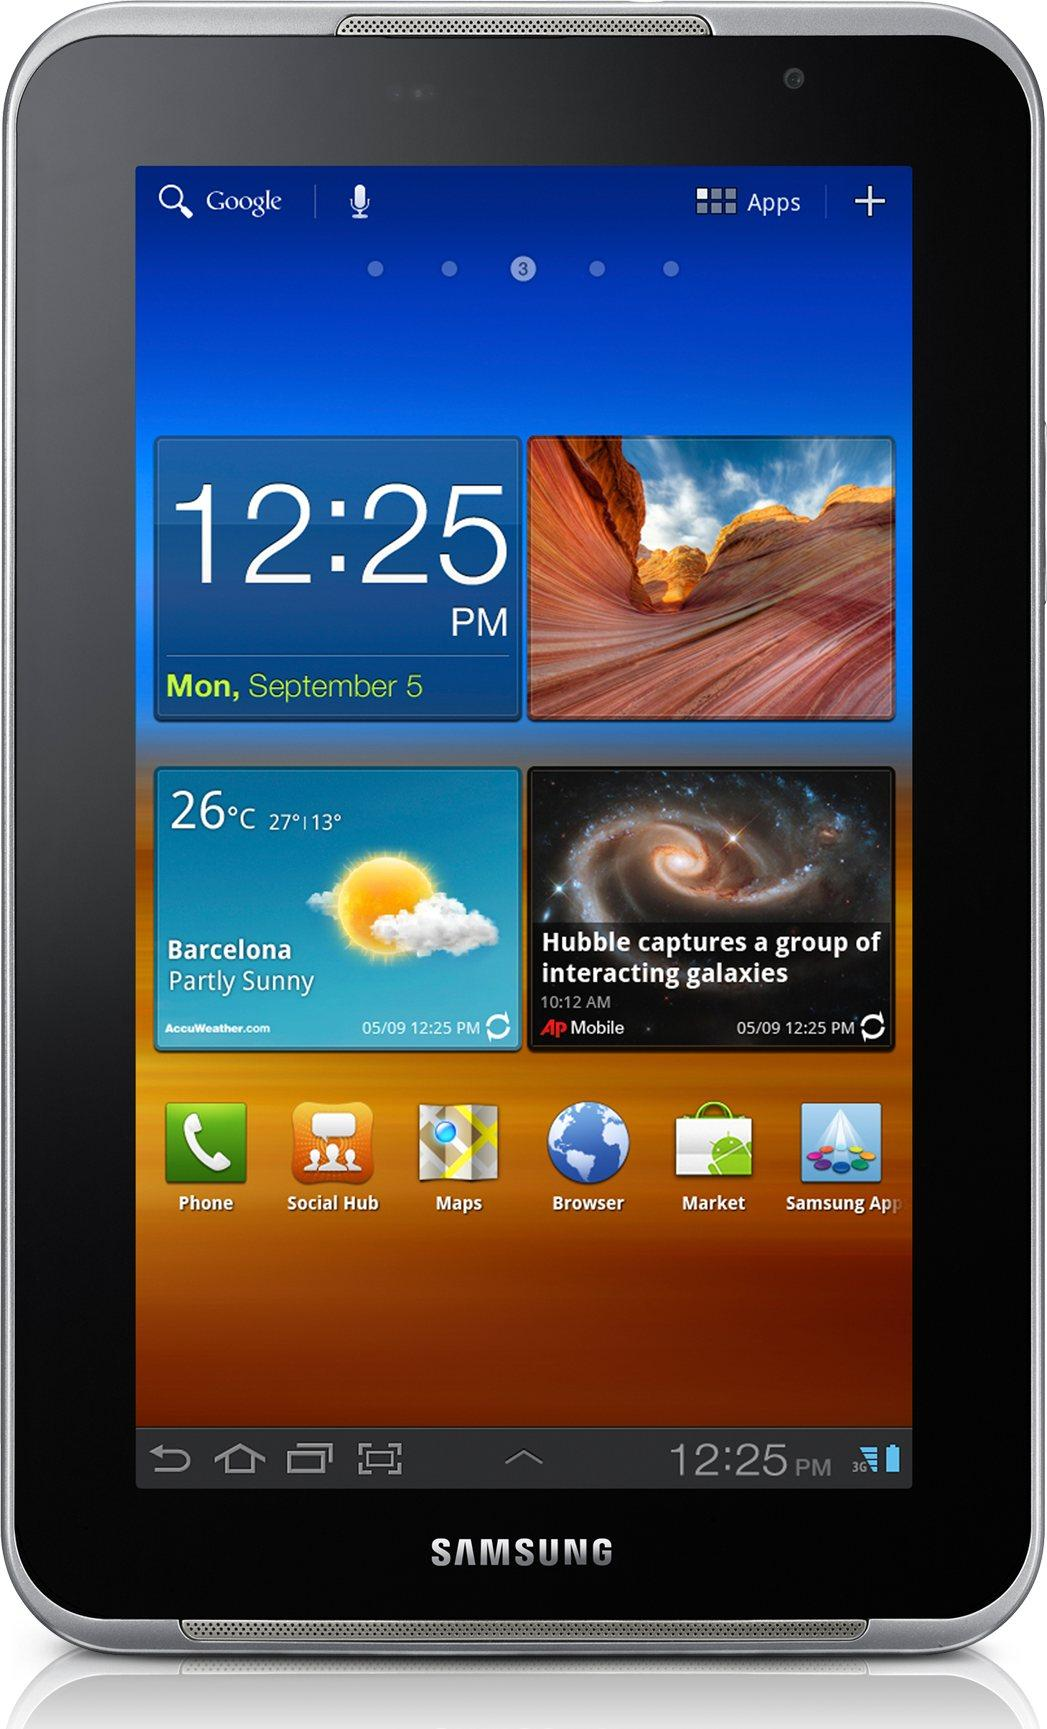 Galaxy Tab 7.0 Plus (WiFi) GT-P6210